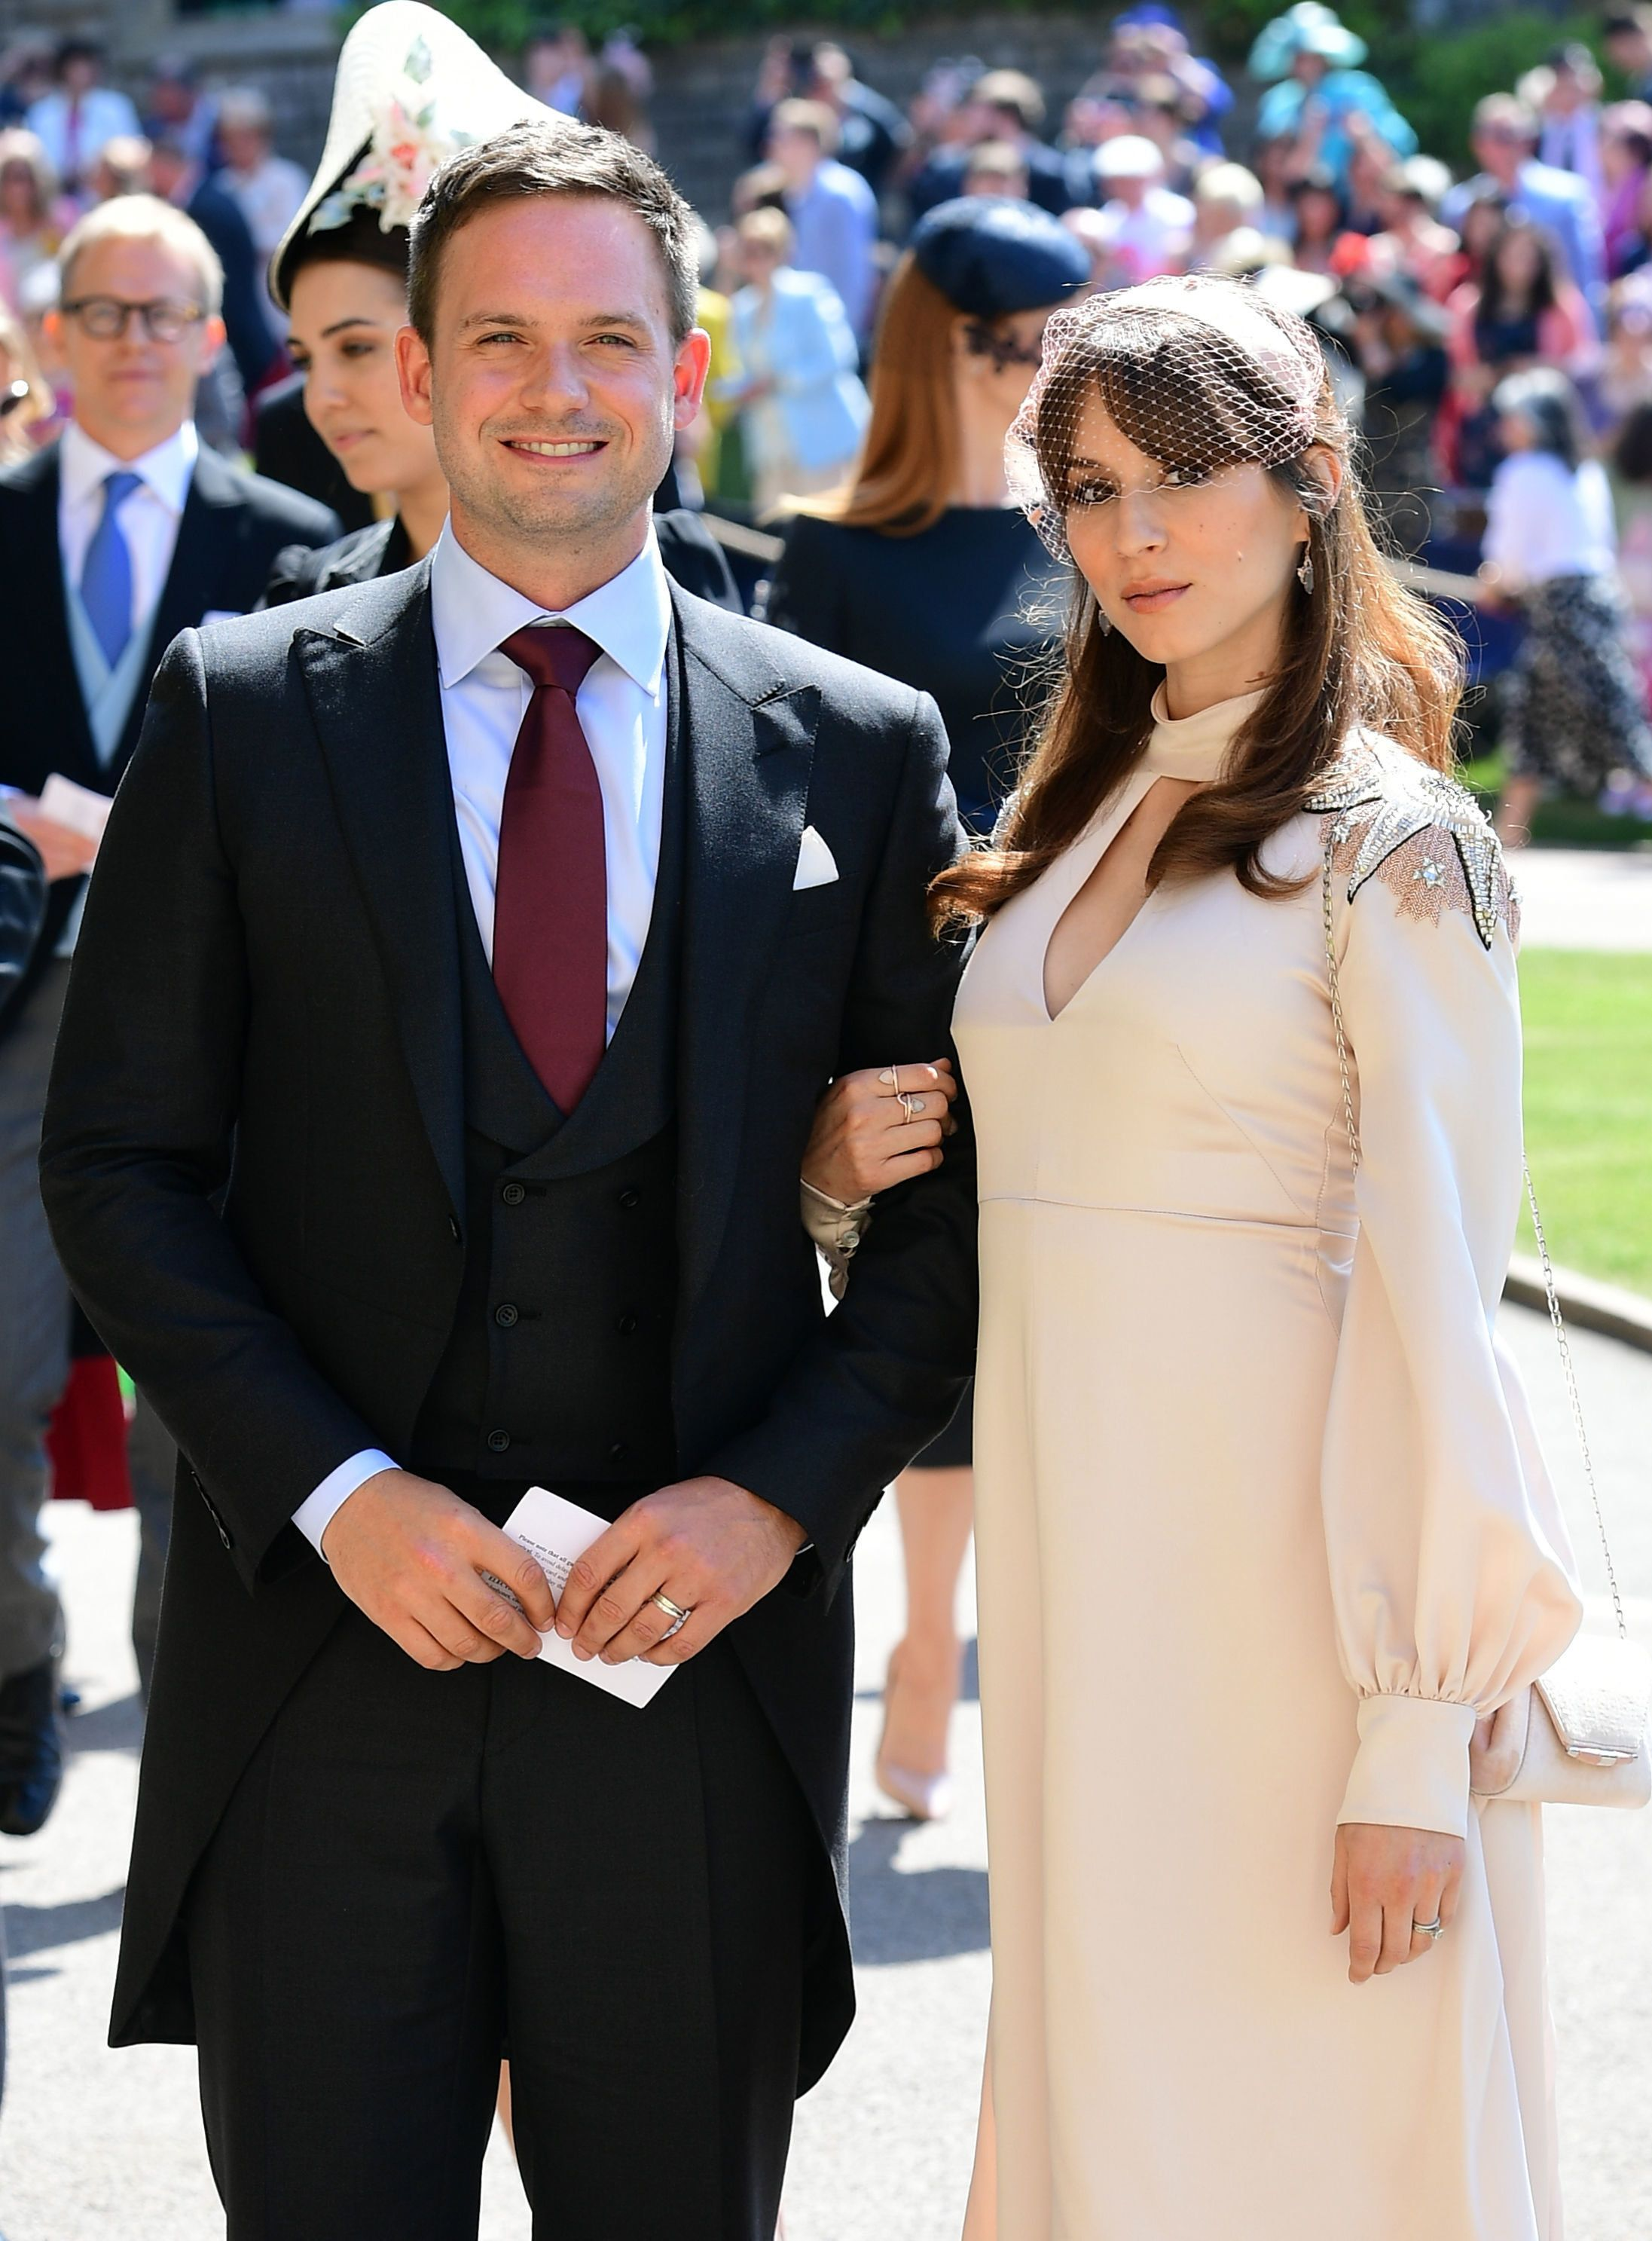 Meghan Markle's friend, US actor Patrick J. Adams and wife Troian Bellisario arrive for the wedding ceremony of Britain's Prince Harry, Duke of Sussex and US actress Meghan Markle at St George's Chapel, Windsor Castle, in Windsor, on May 19, 2018. (Photo by Ian WEST / POOL / AFP)        (Photo credit should read IAN WEST/AFP/Getty Images)